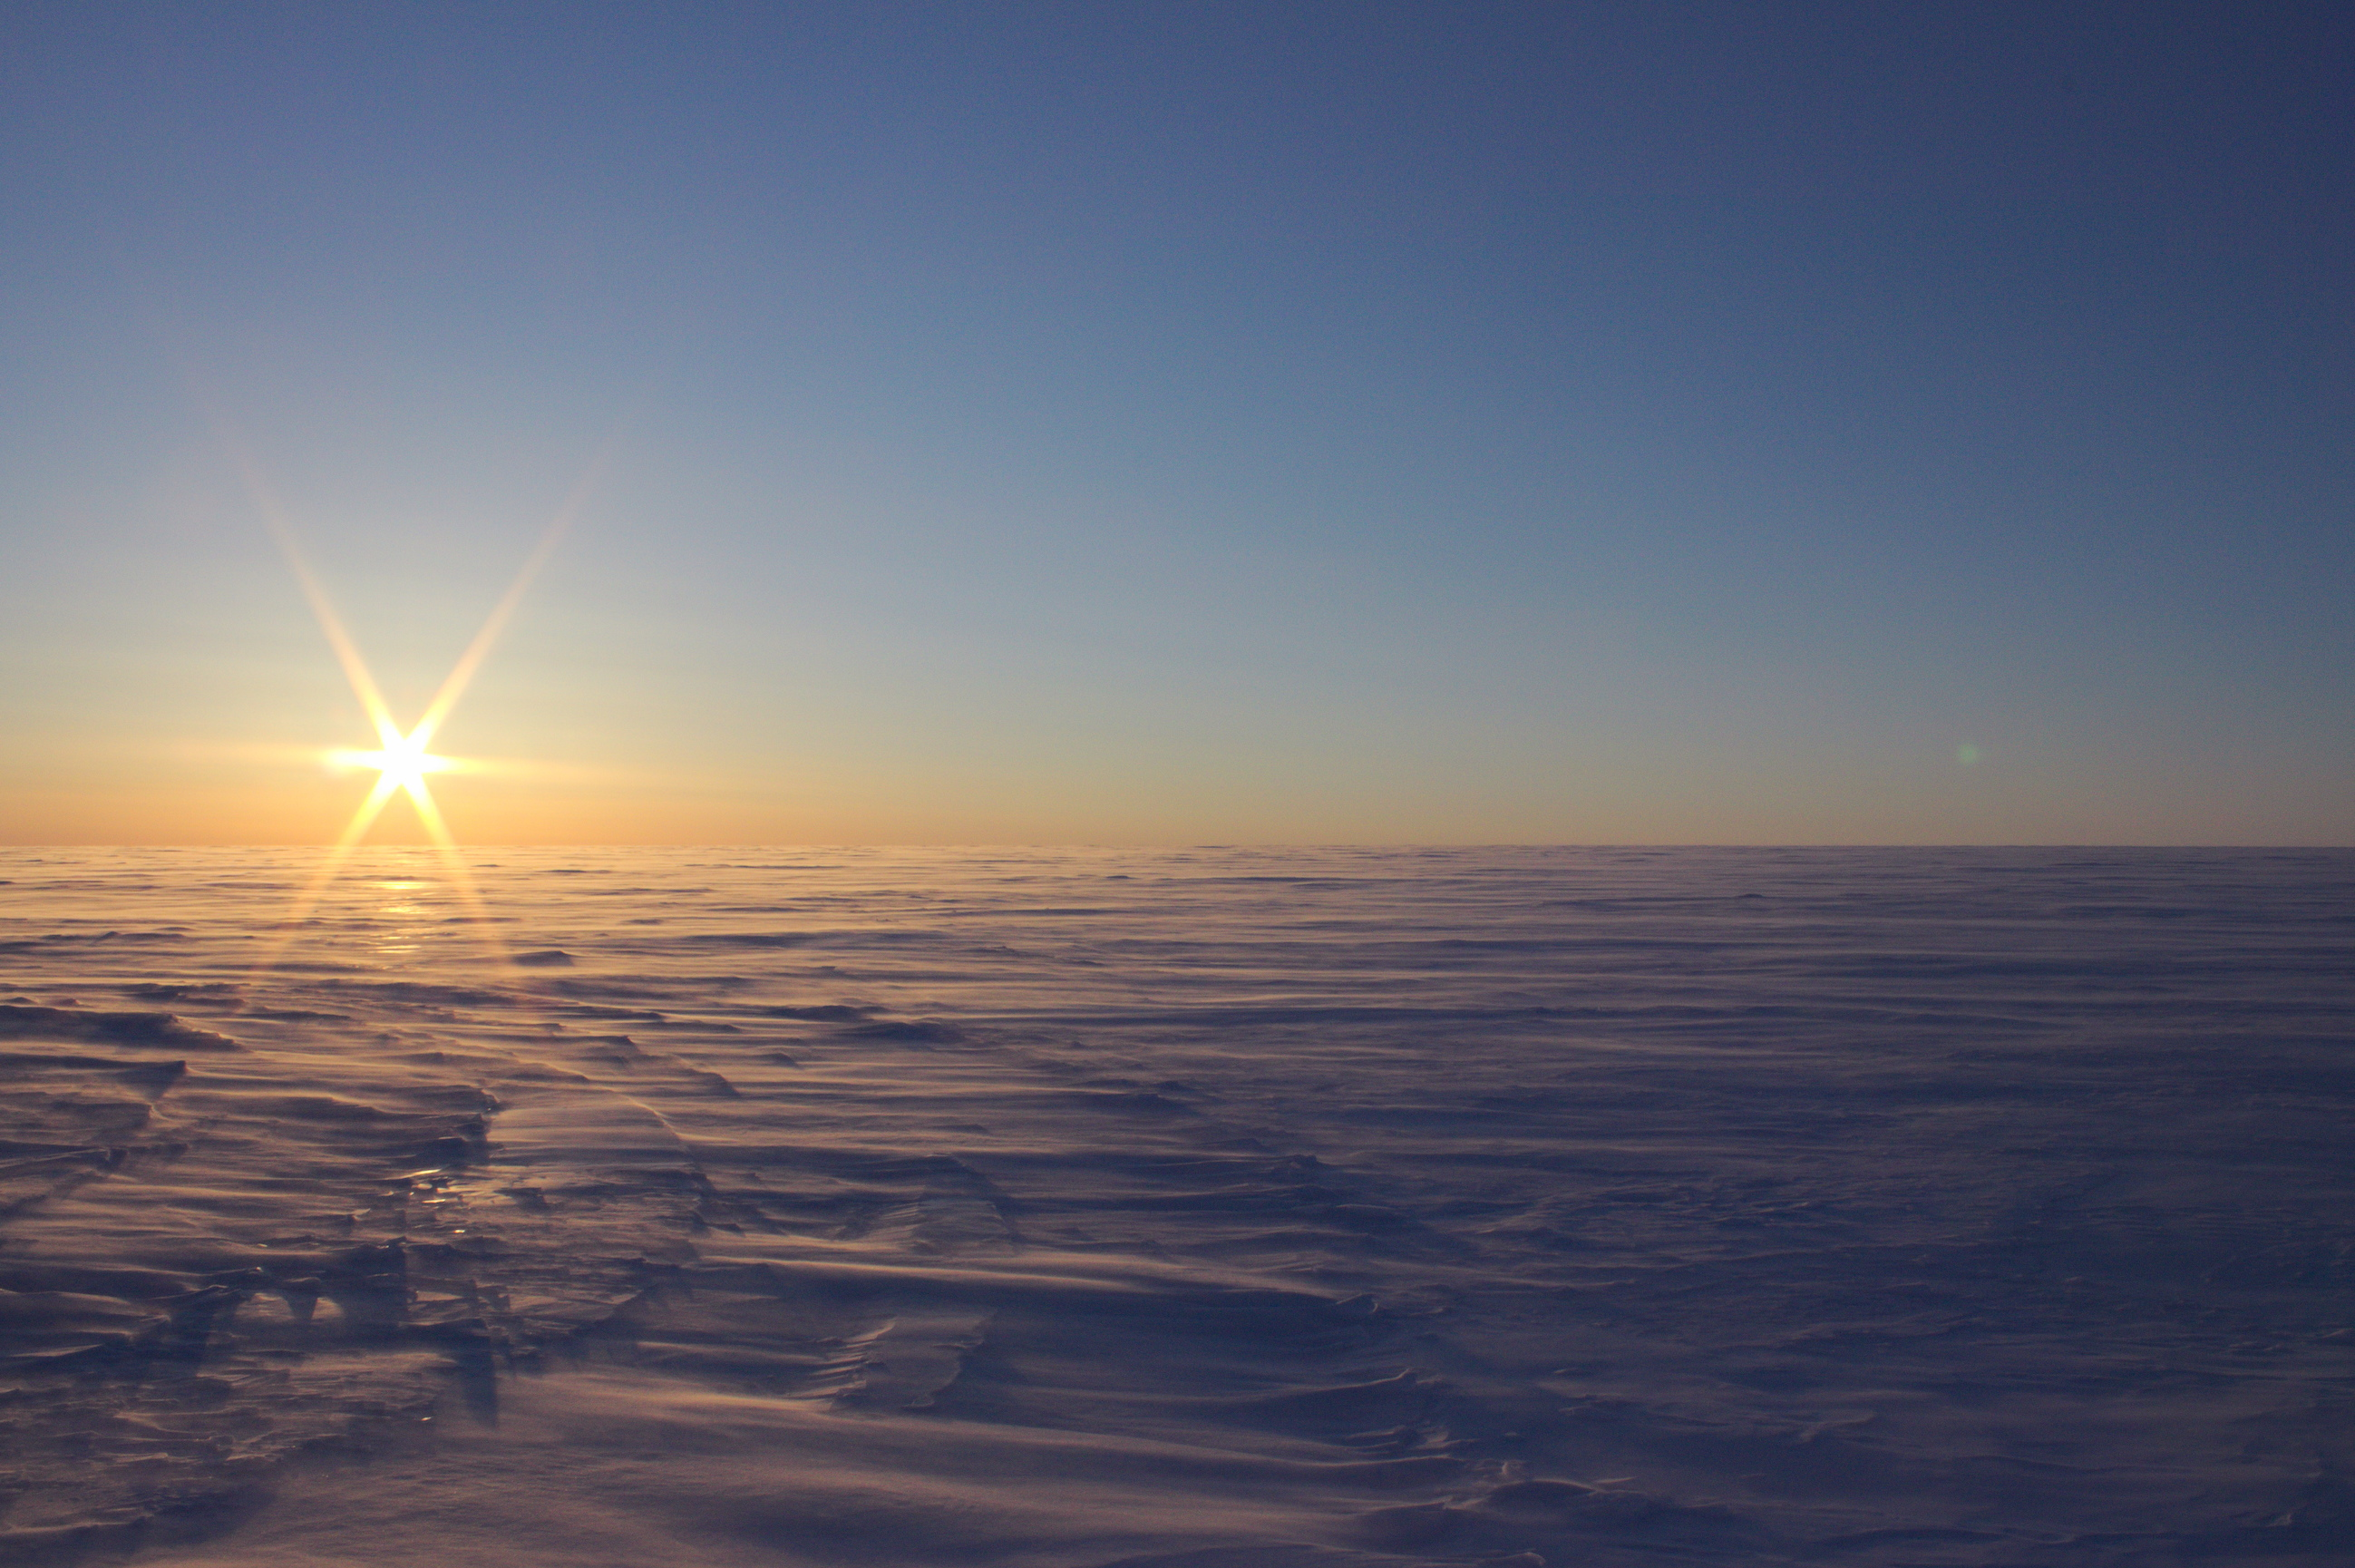 The discovery of two subglacial lakes in the Canadian Arctic could aid in the search for extraterrestrial life on ice-covered planets.